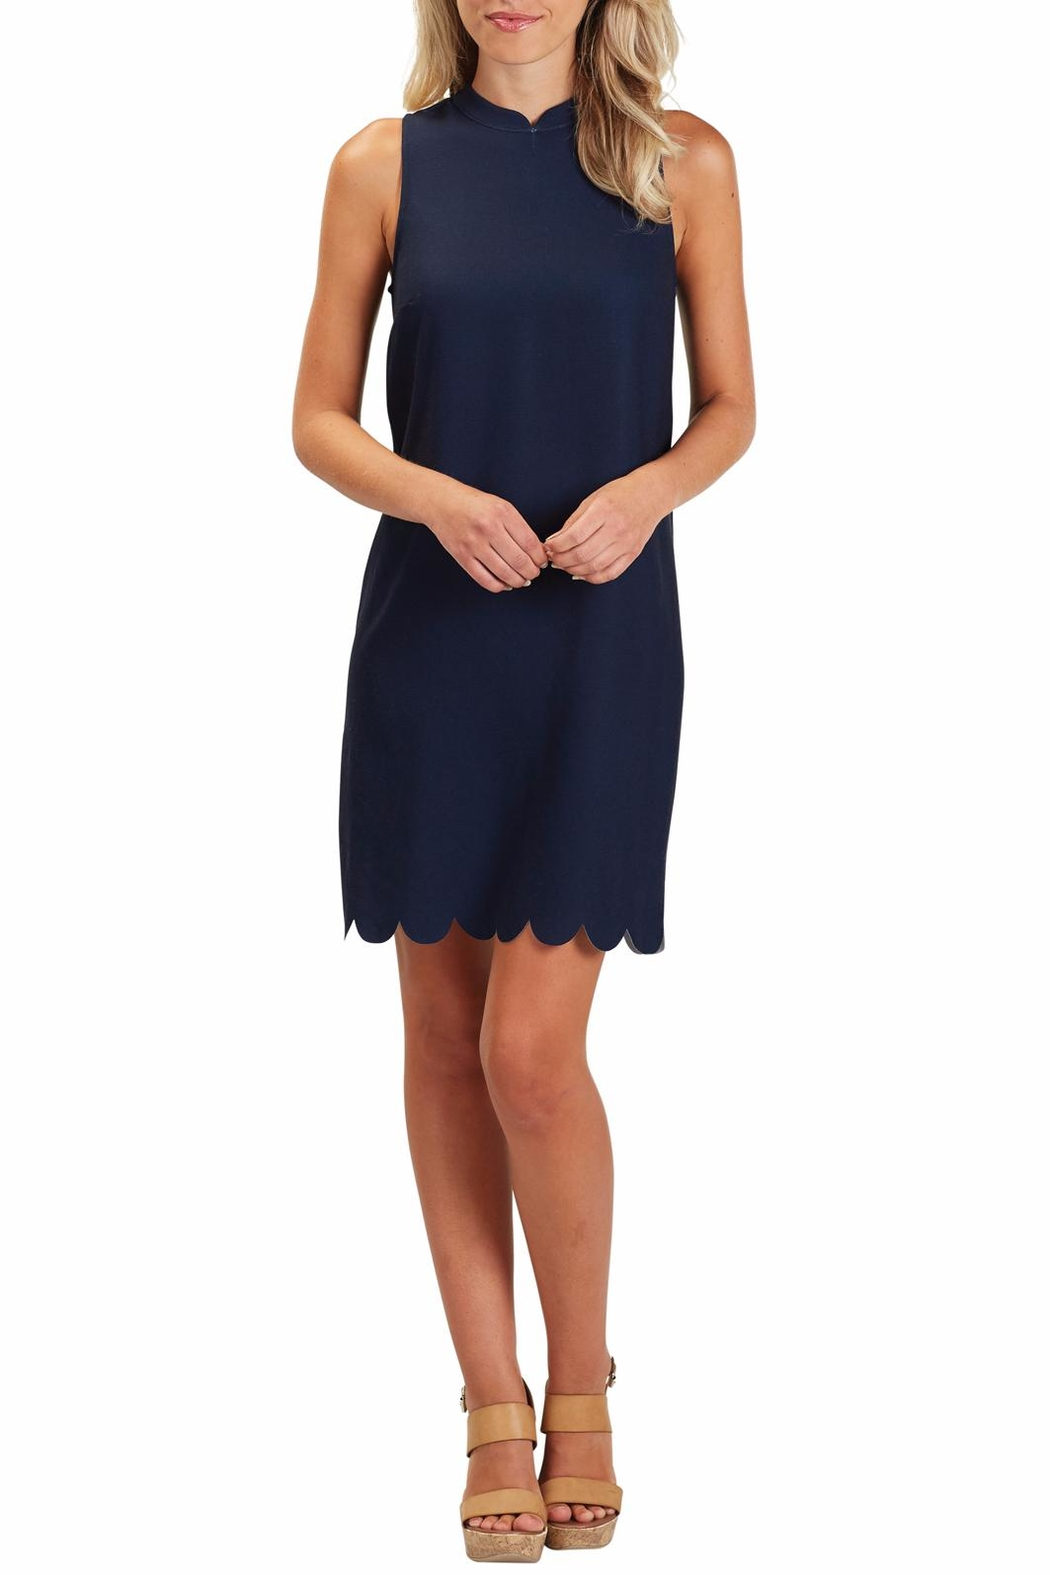 Mud Pie Britain Scalloped Dress - Back Cropped Image